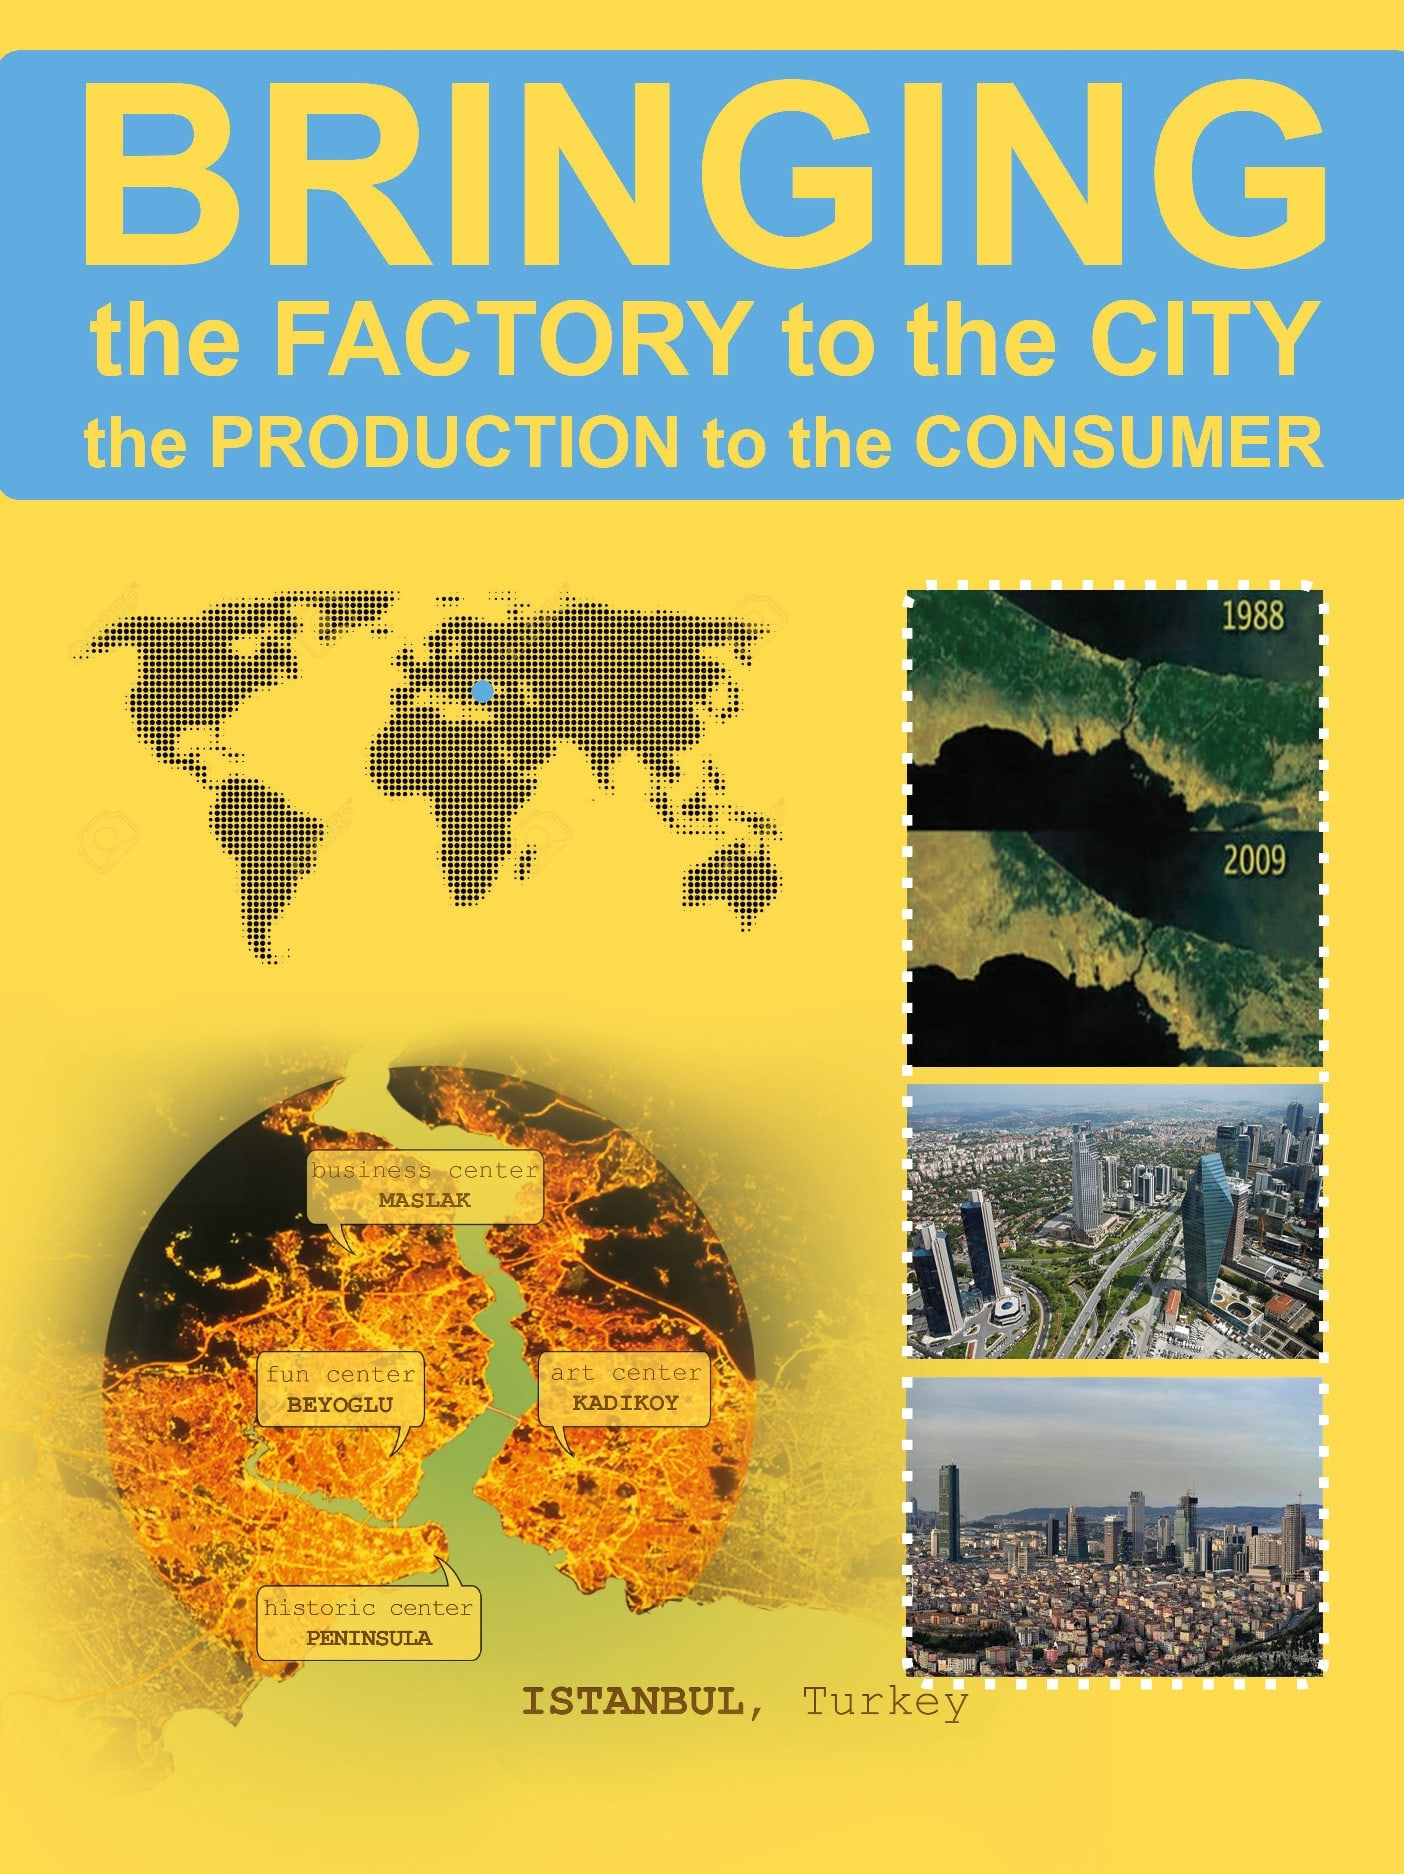 Bringing the Factory to the City